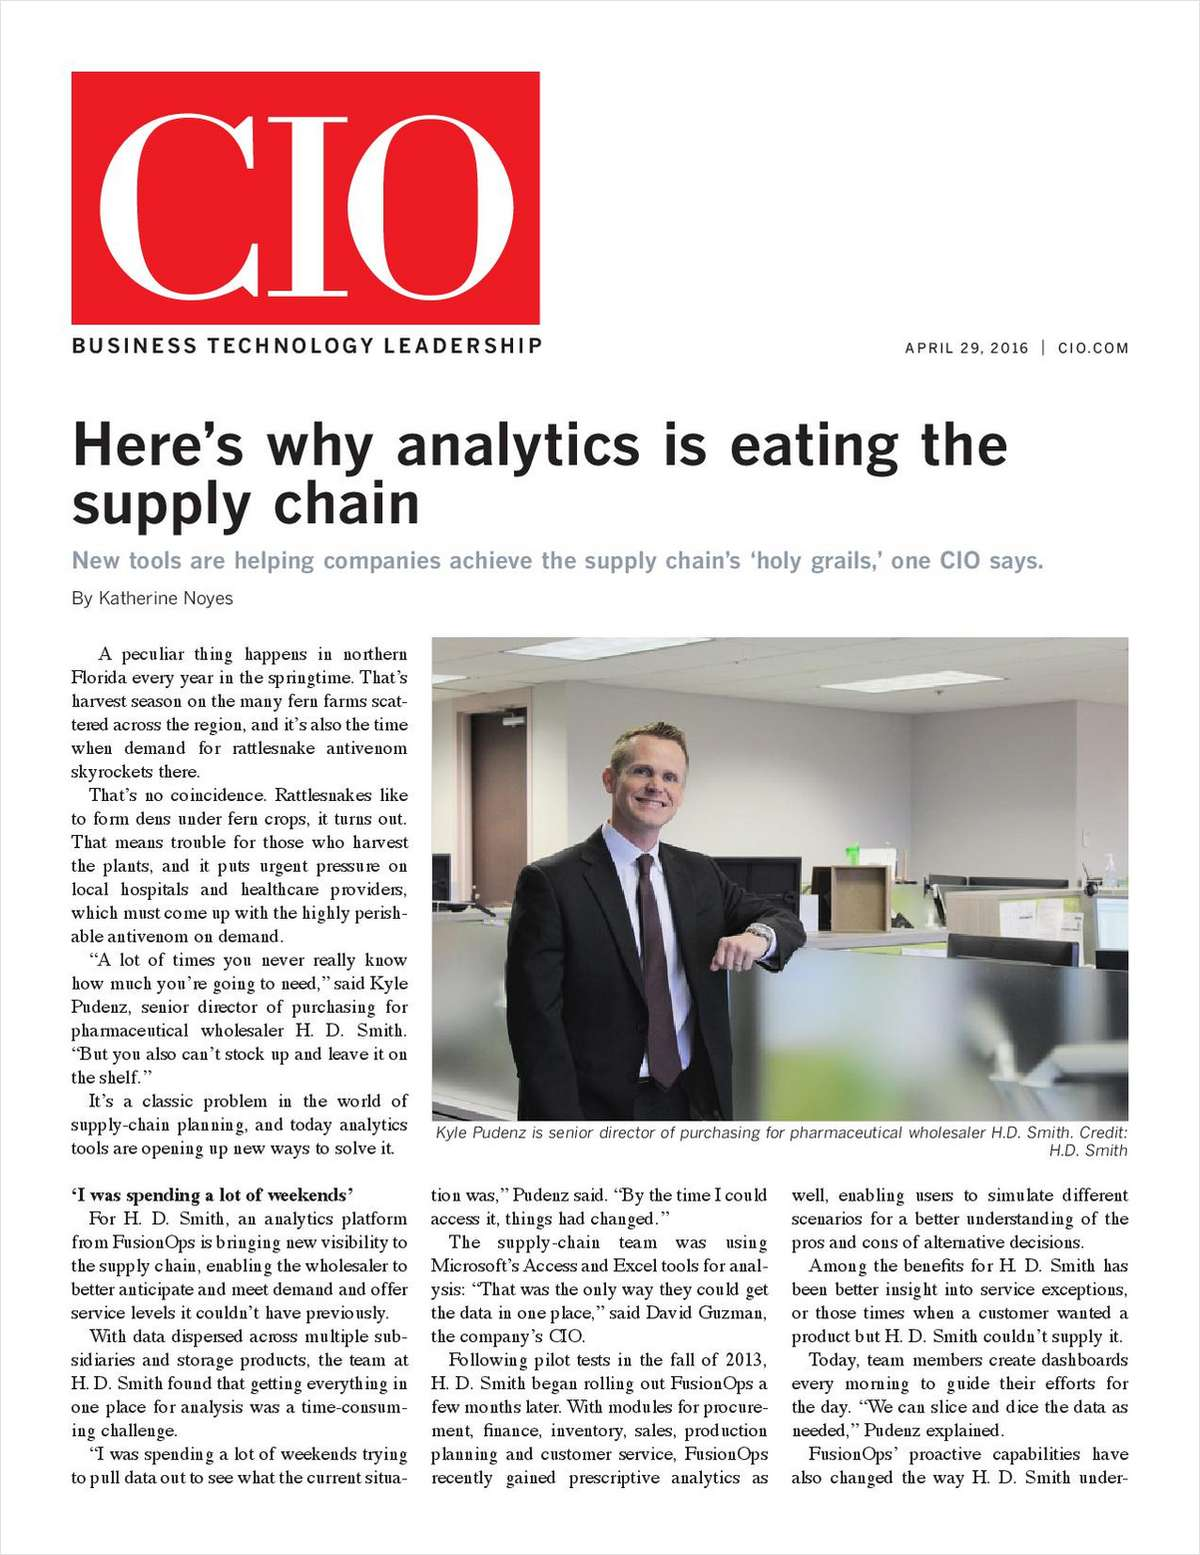 CIO: Here's Why Analytics is Eating the Supply Chain